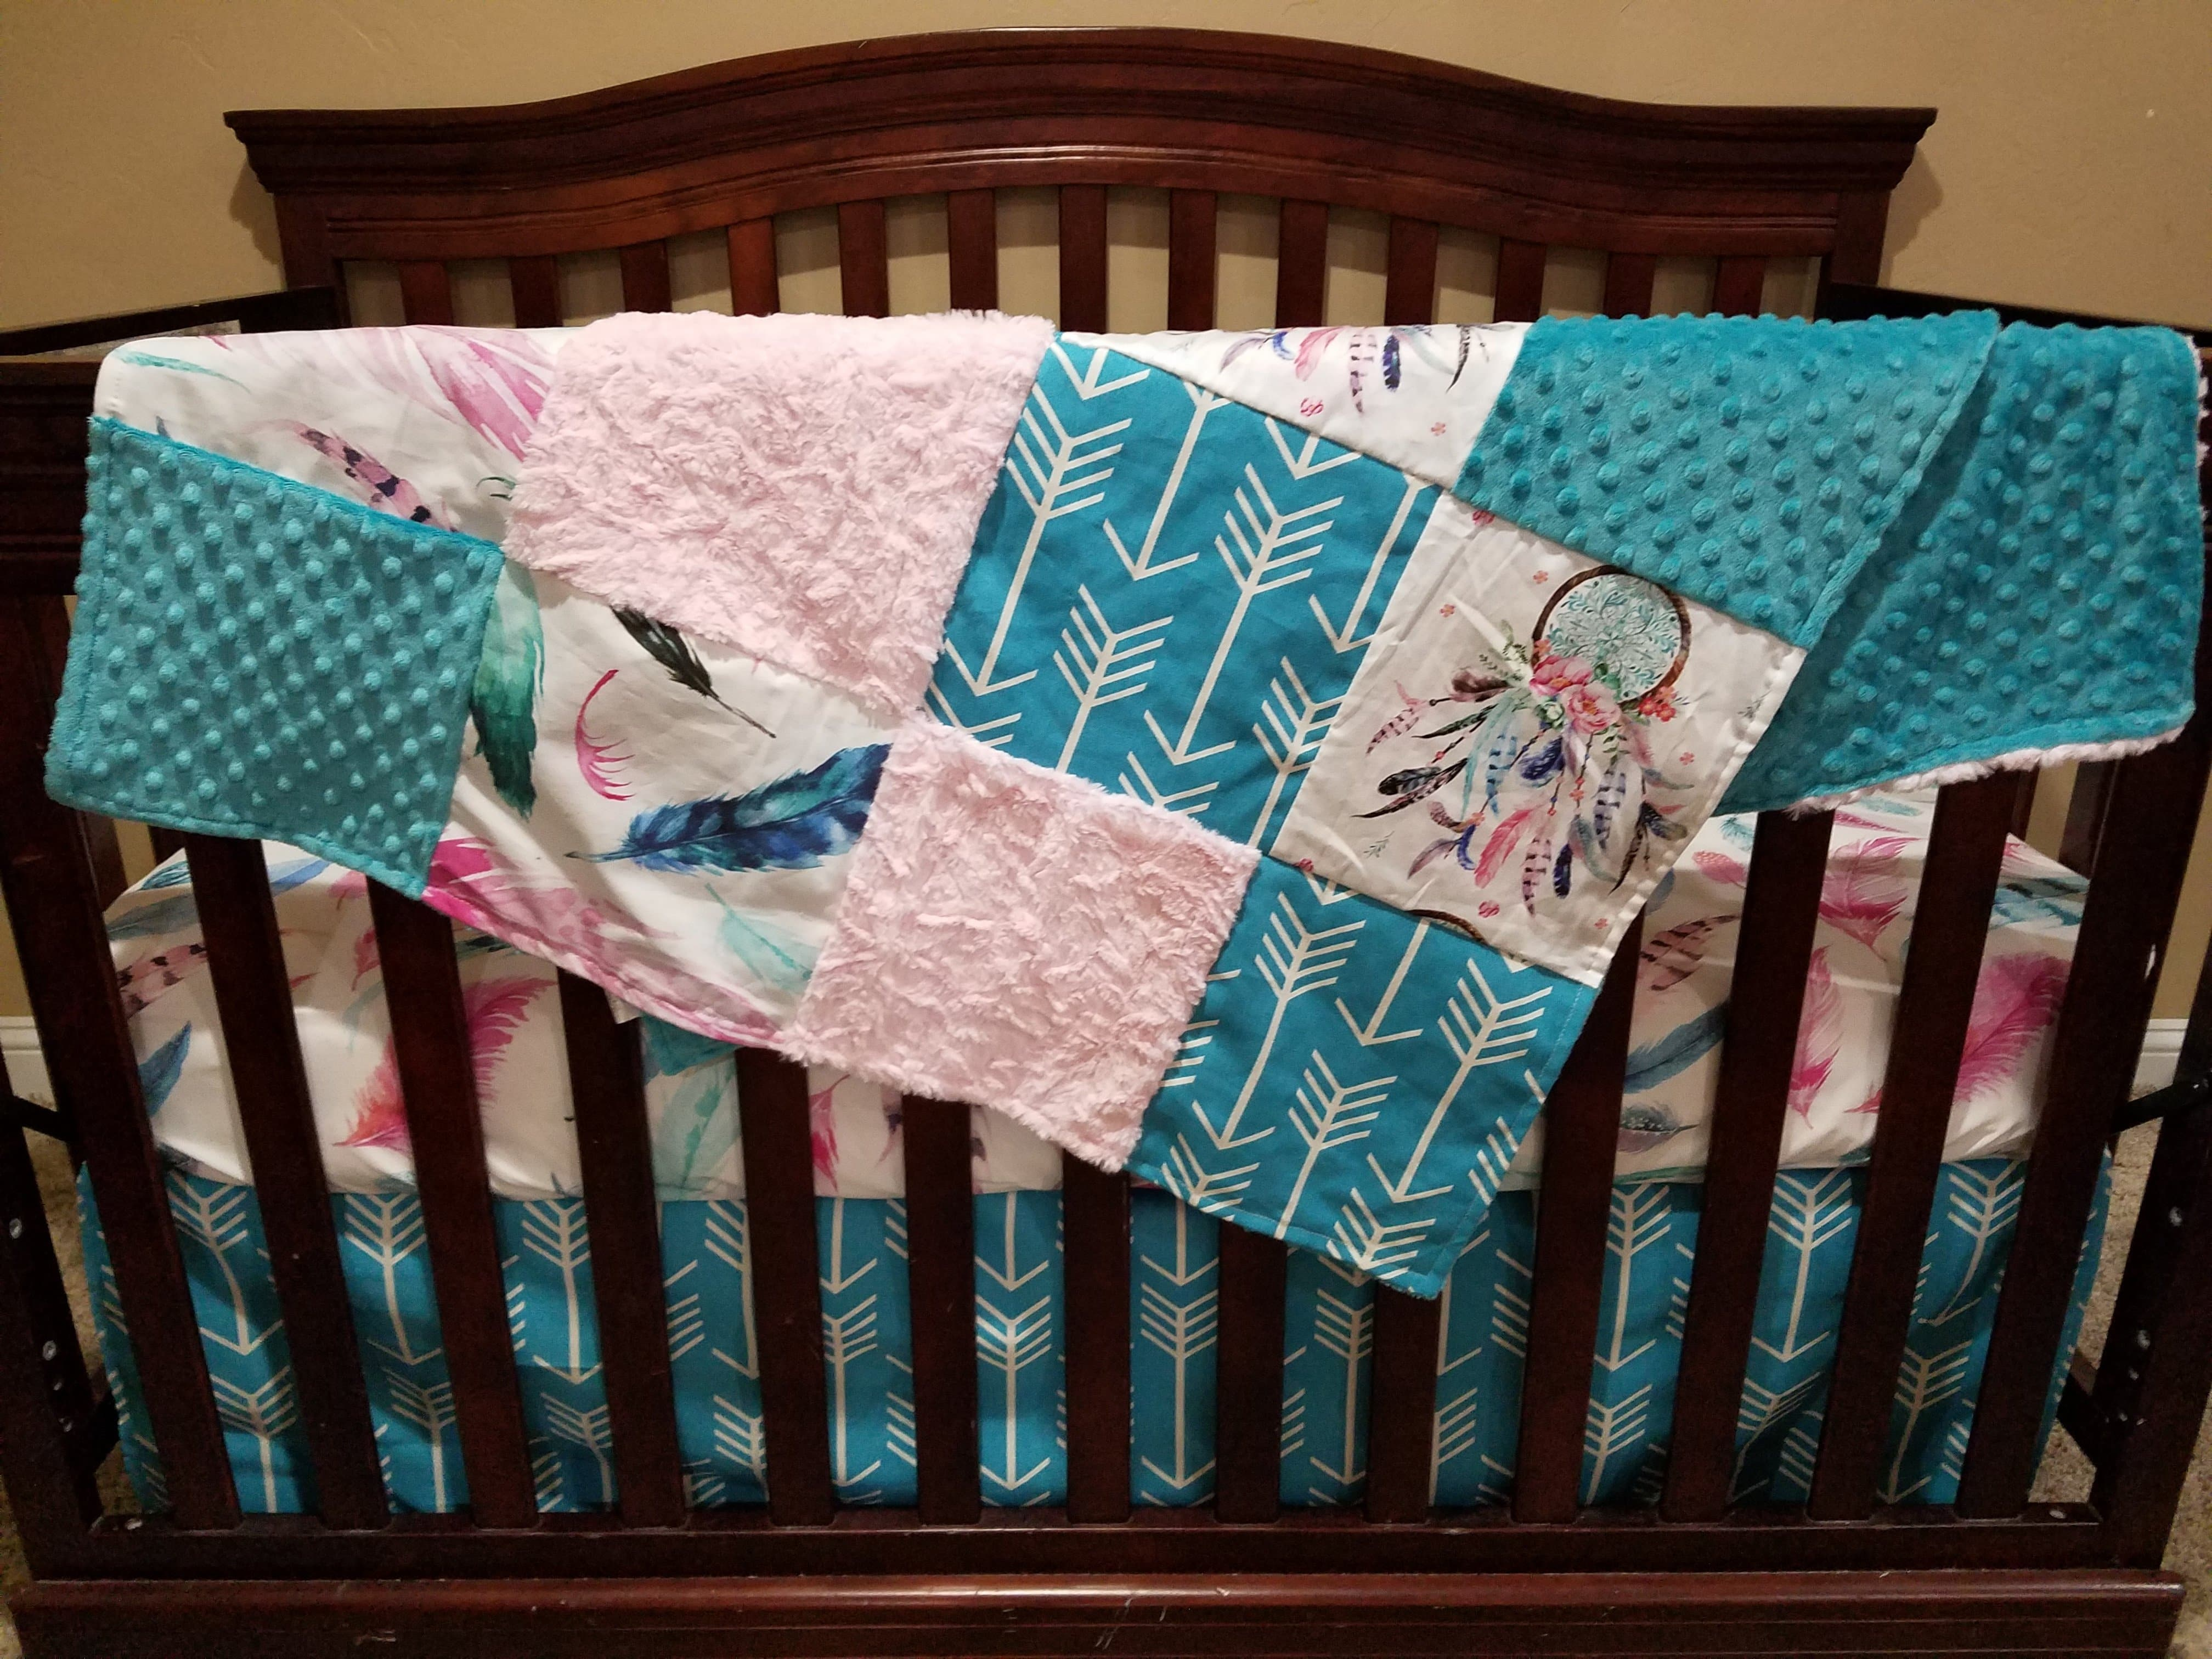 geometric crib piece coral grey collection bedding gray pictures and lily pink nursery com amazon cribs incredible skirt basics aqua teal patchwork image woodland chevron serena awesome mint